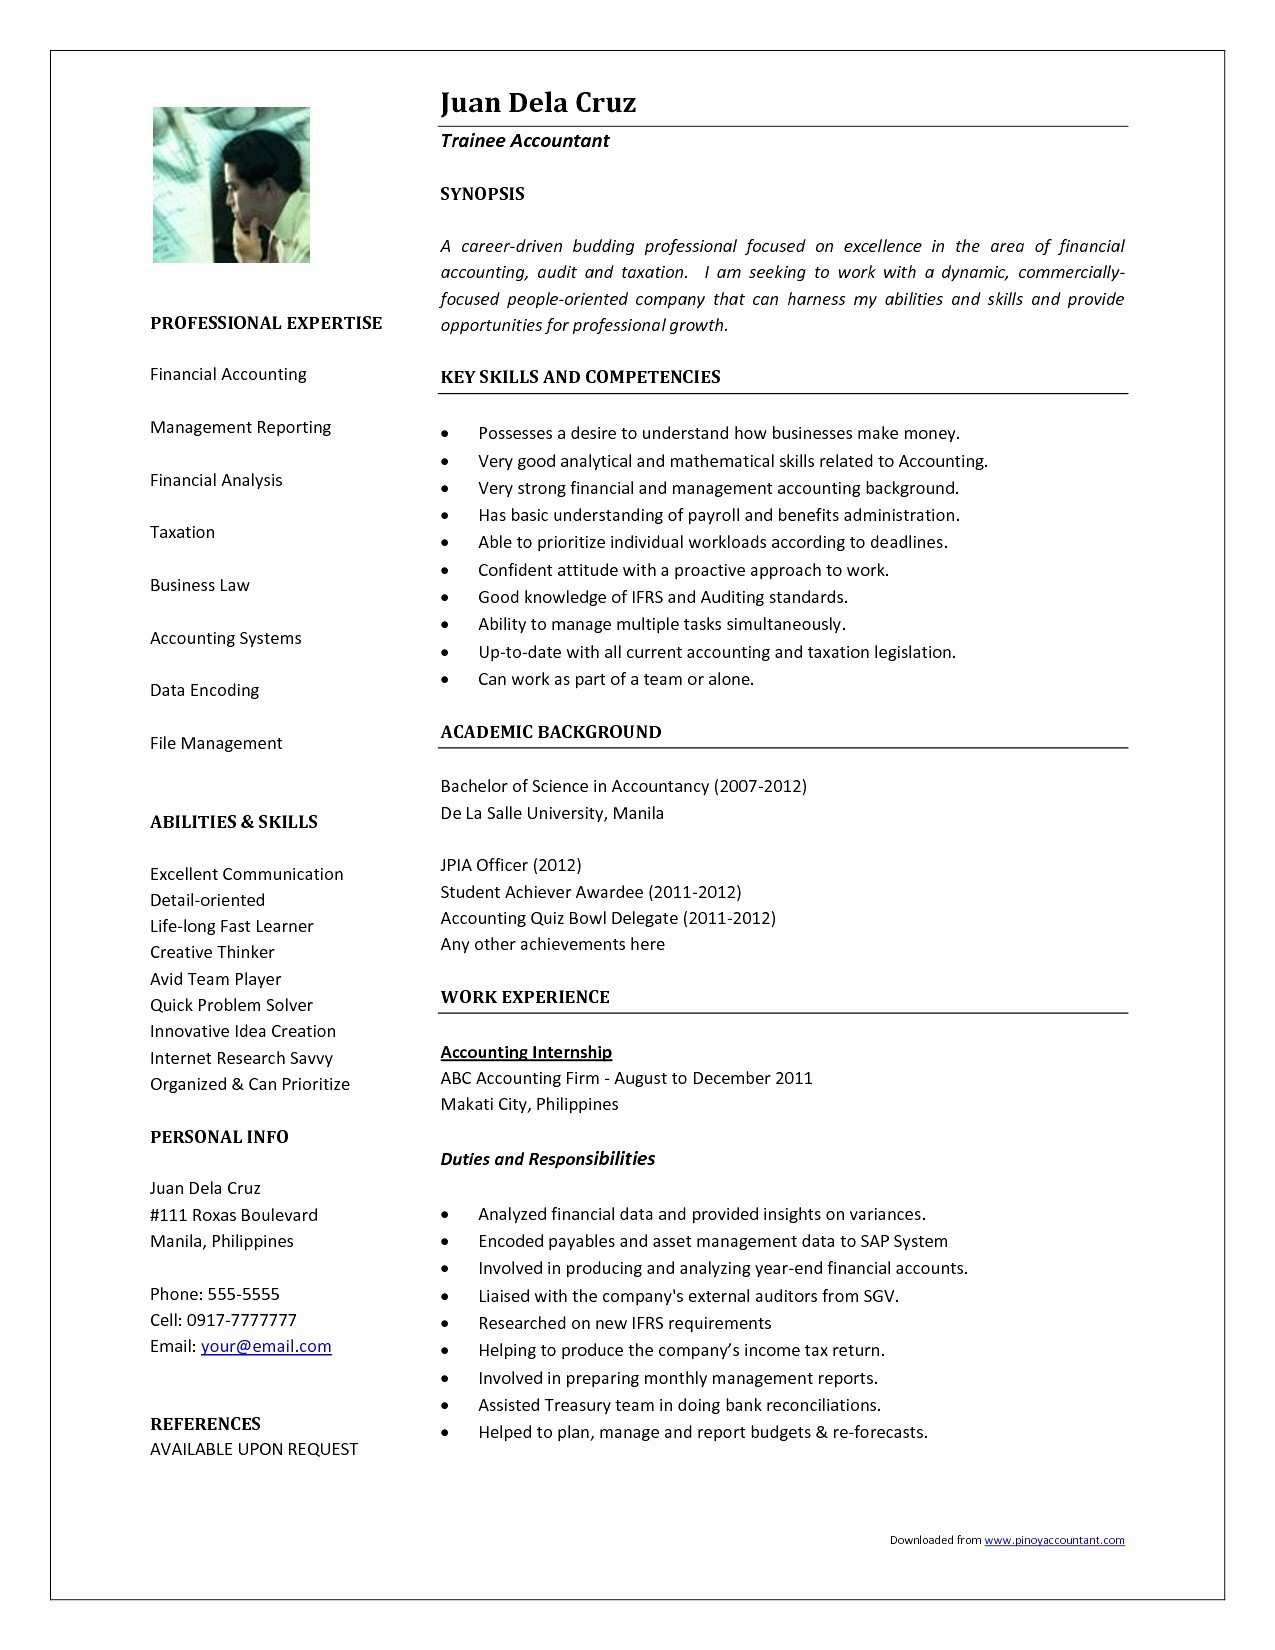 Free Letter Of Understanding Template - Inspirational Letter Understanding Template